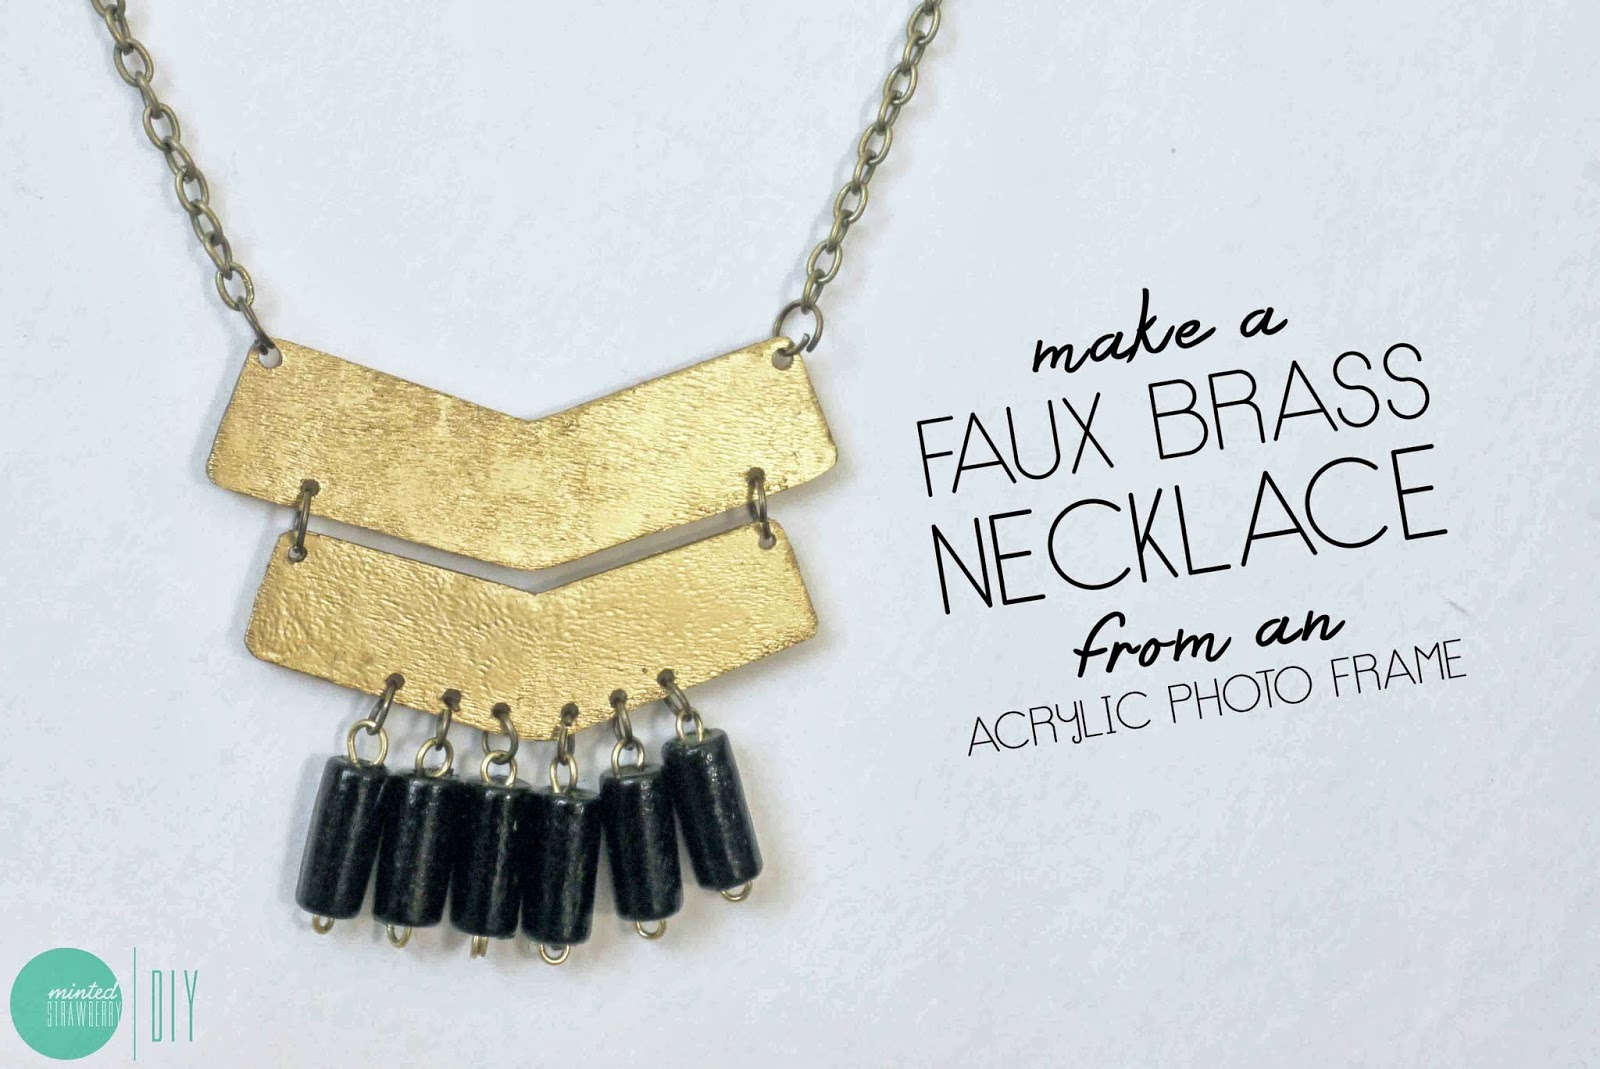 Make an Aztec-Inspired Faux Brass Necklace